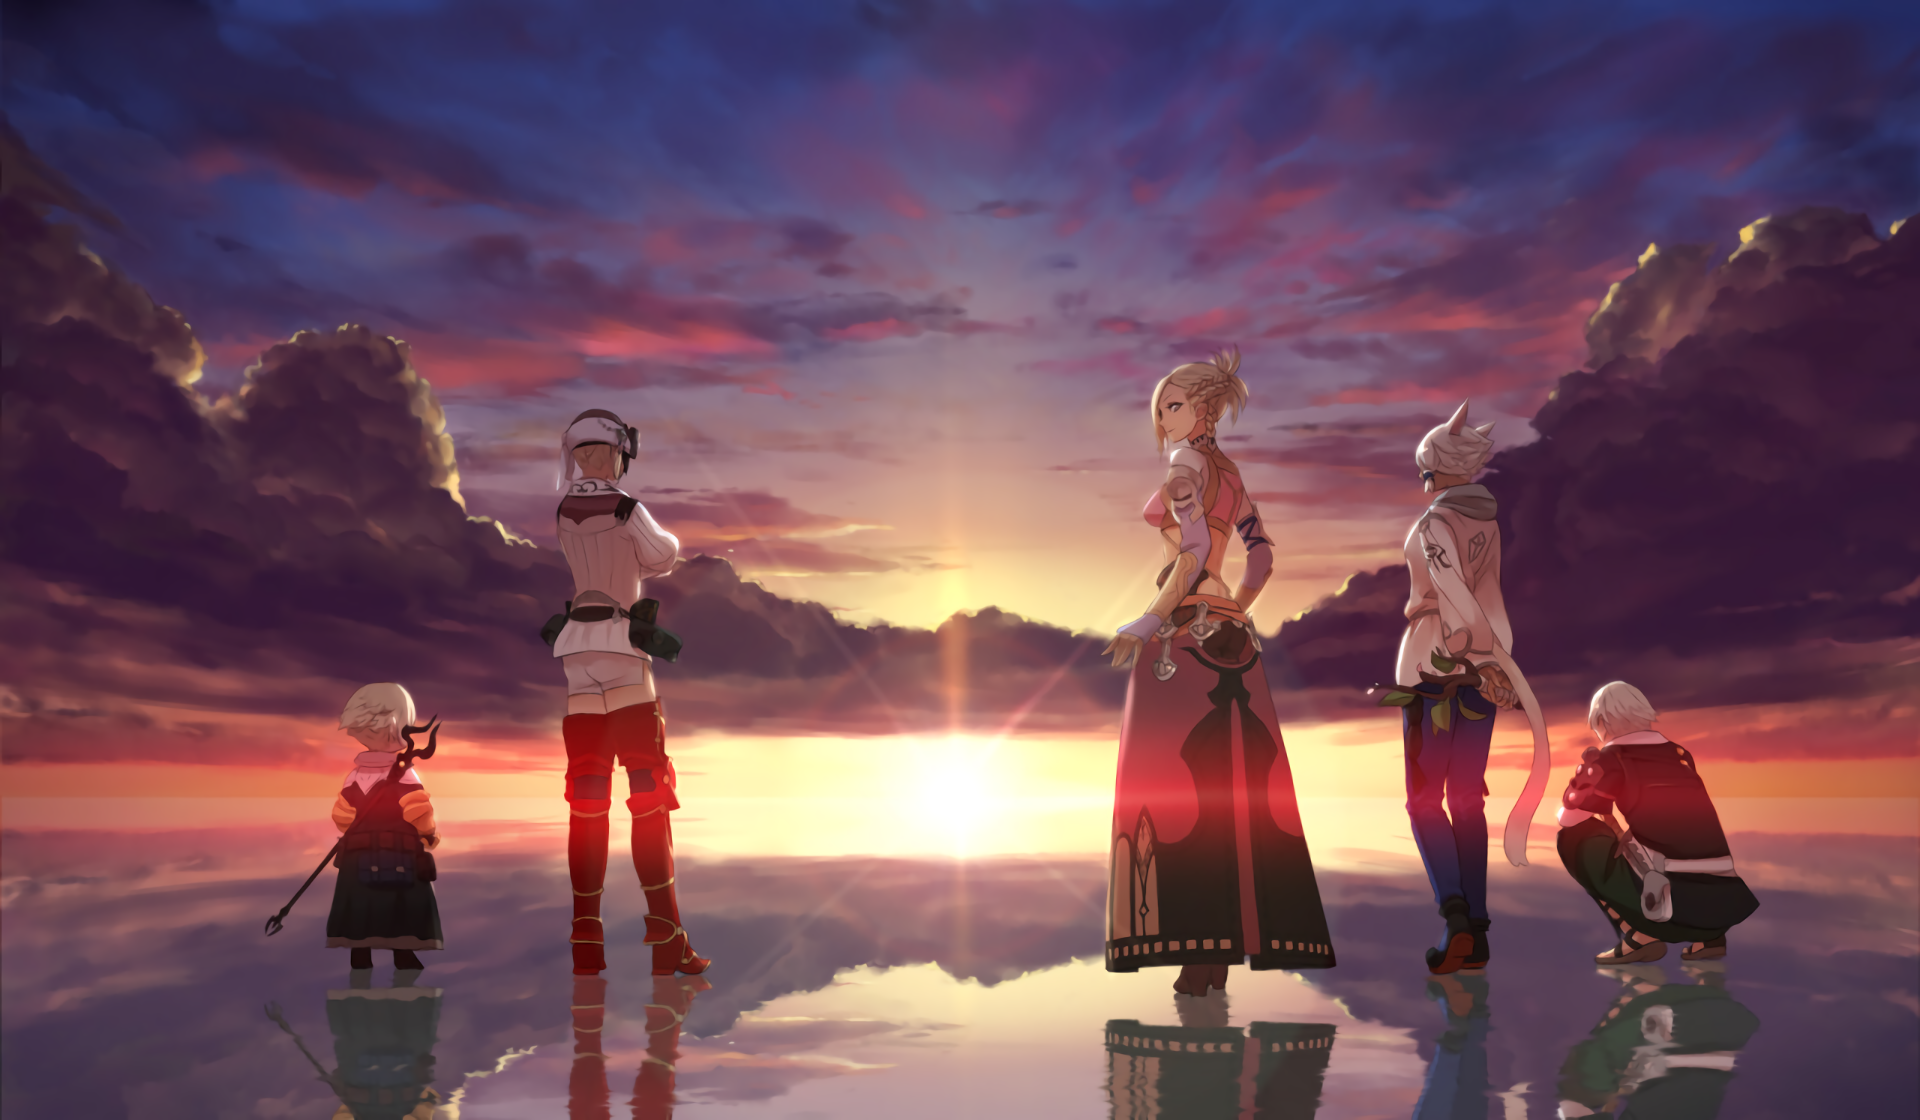 Final Fantasy Xiv Wallpapers Pictures Images